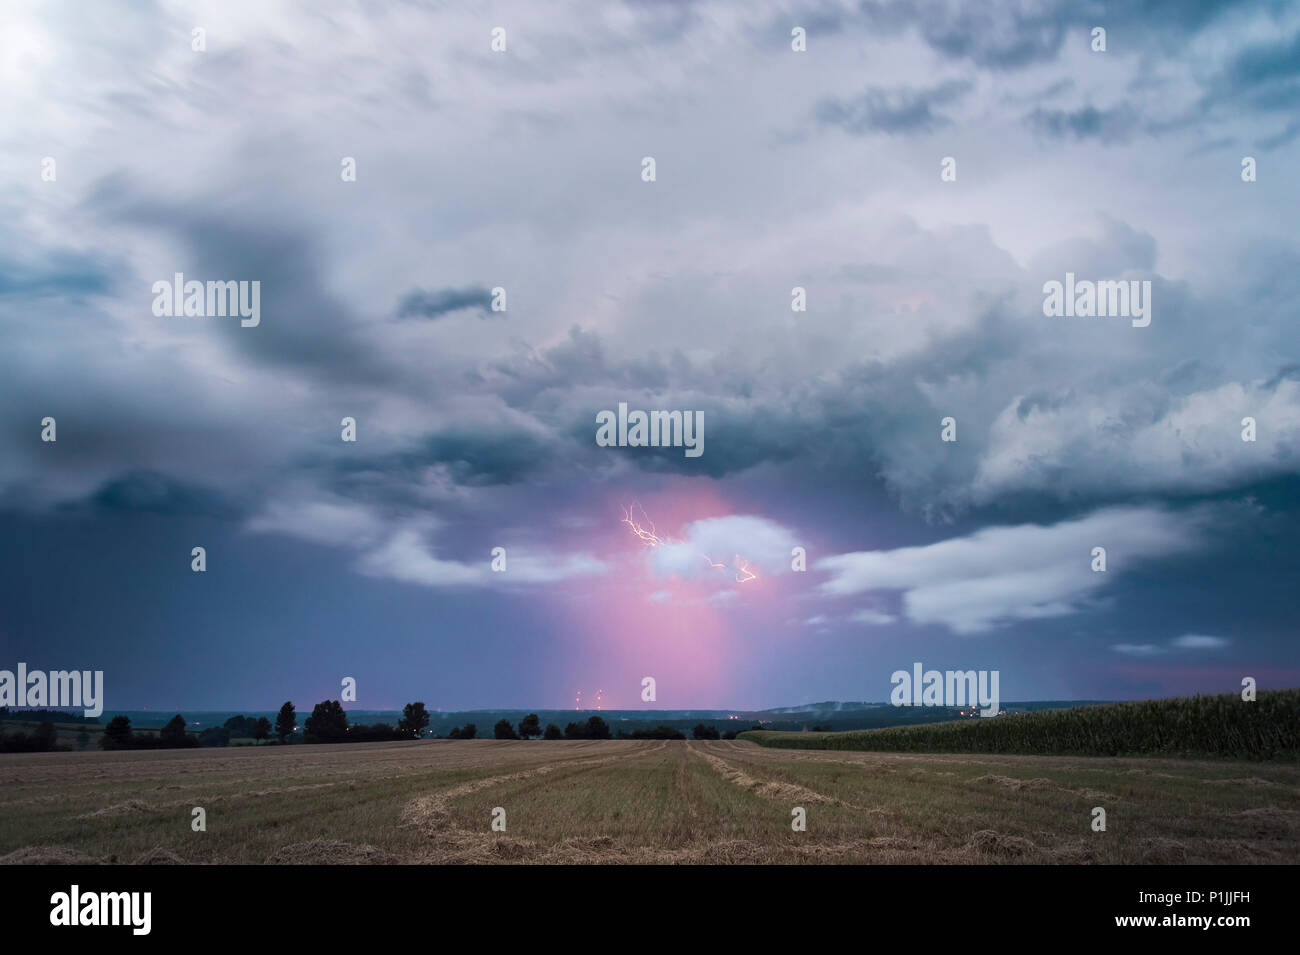 Lightning illuminated precipitation on the backside of a leaving supercell near Feuchtwangen, Baden-Wuerttemberg, Germany - Stock Image